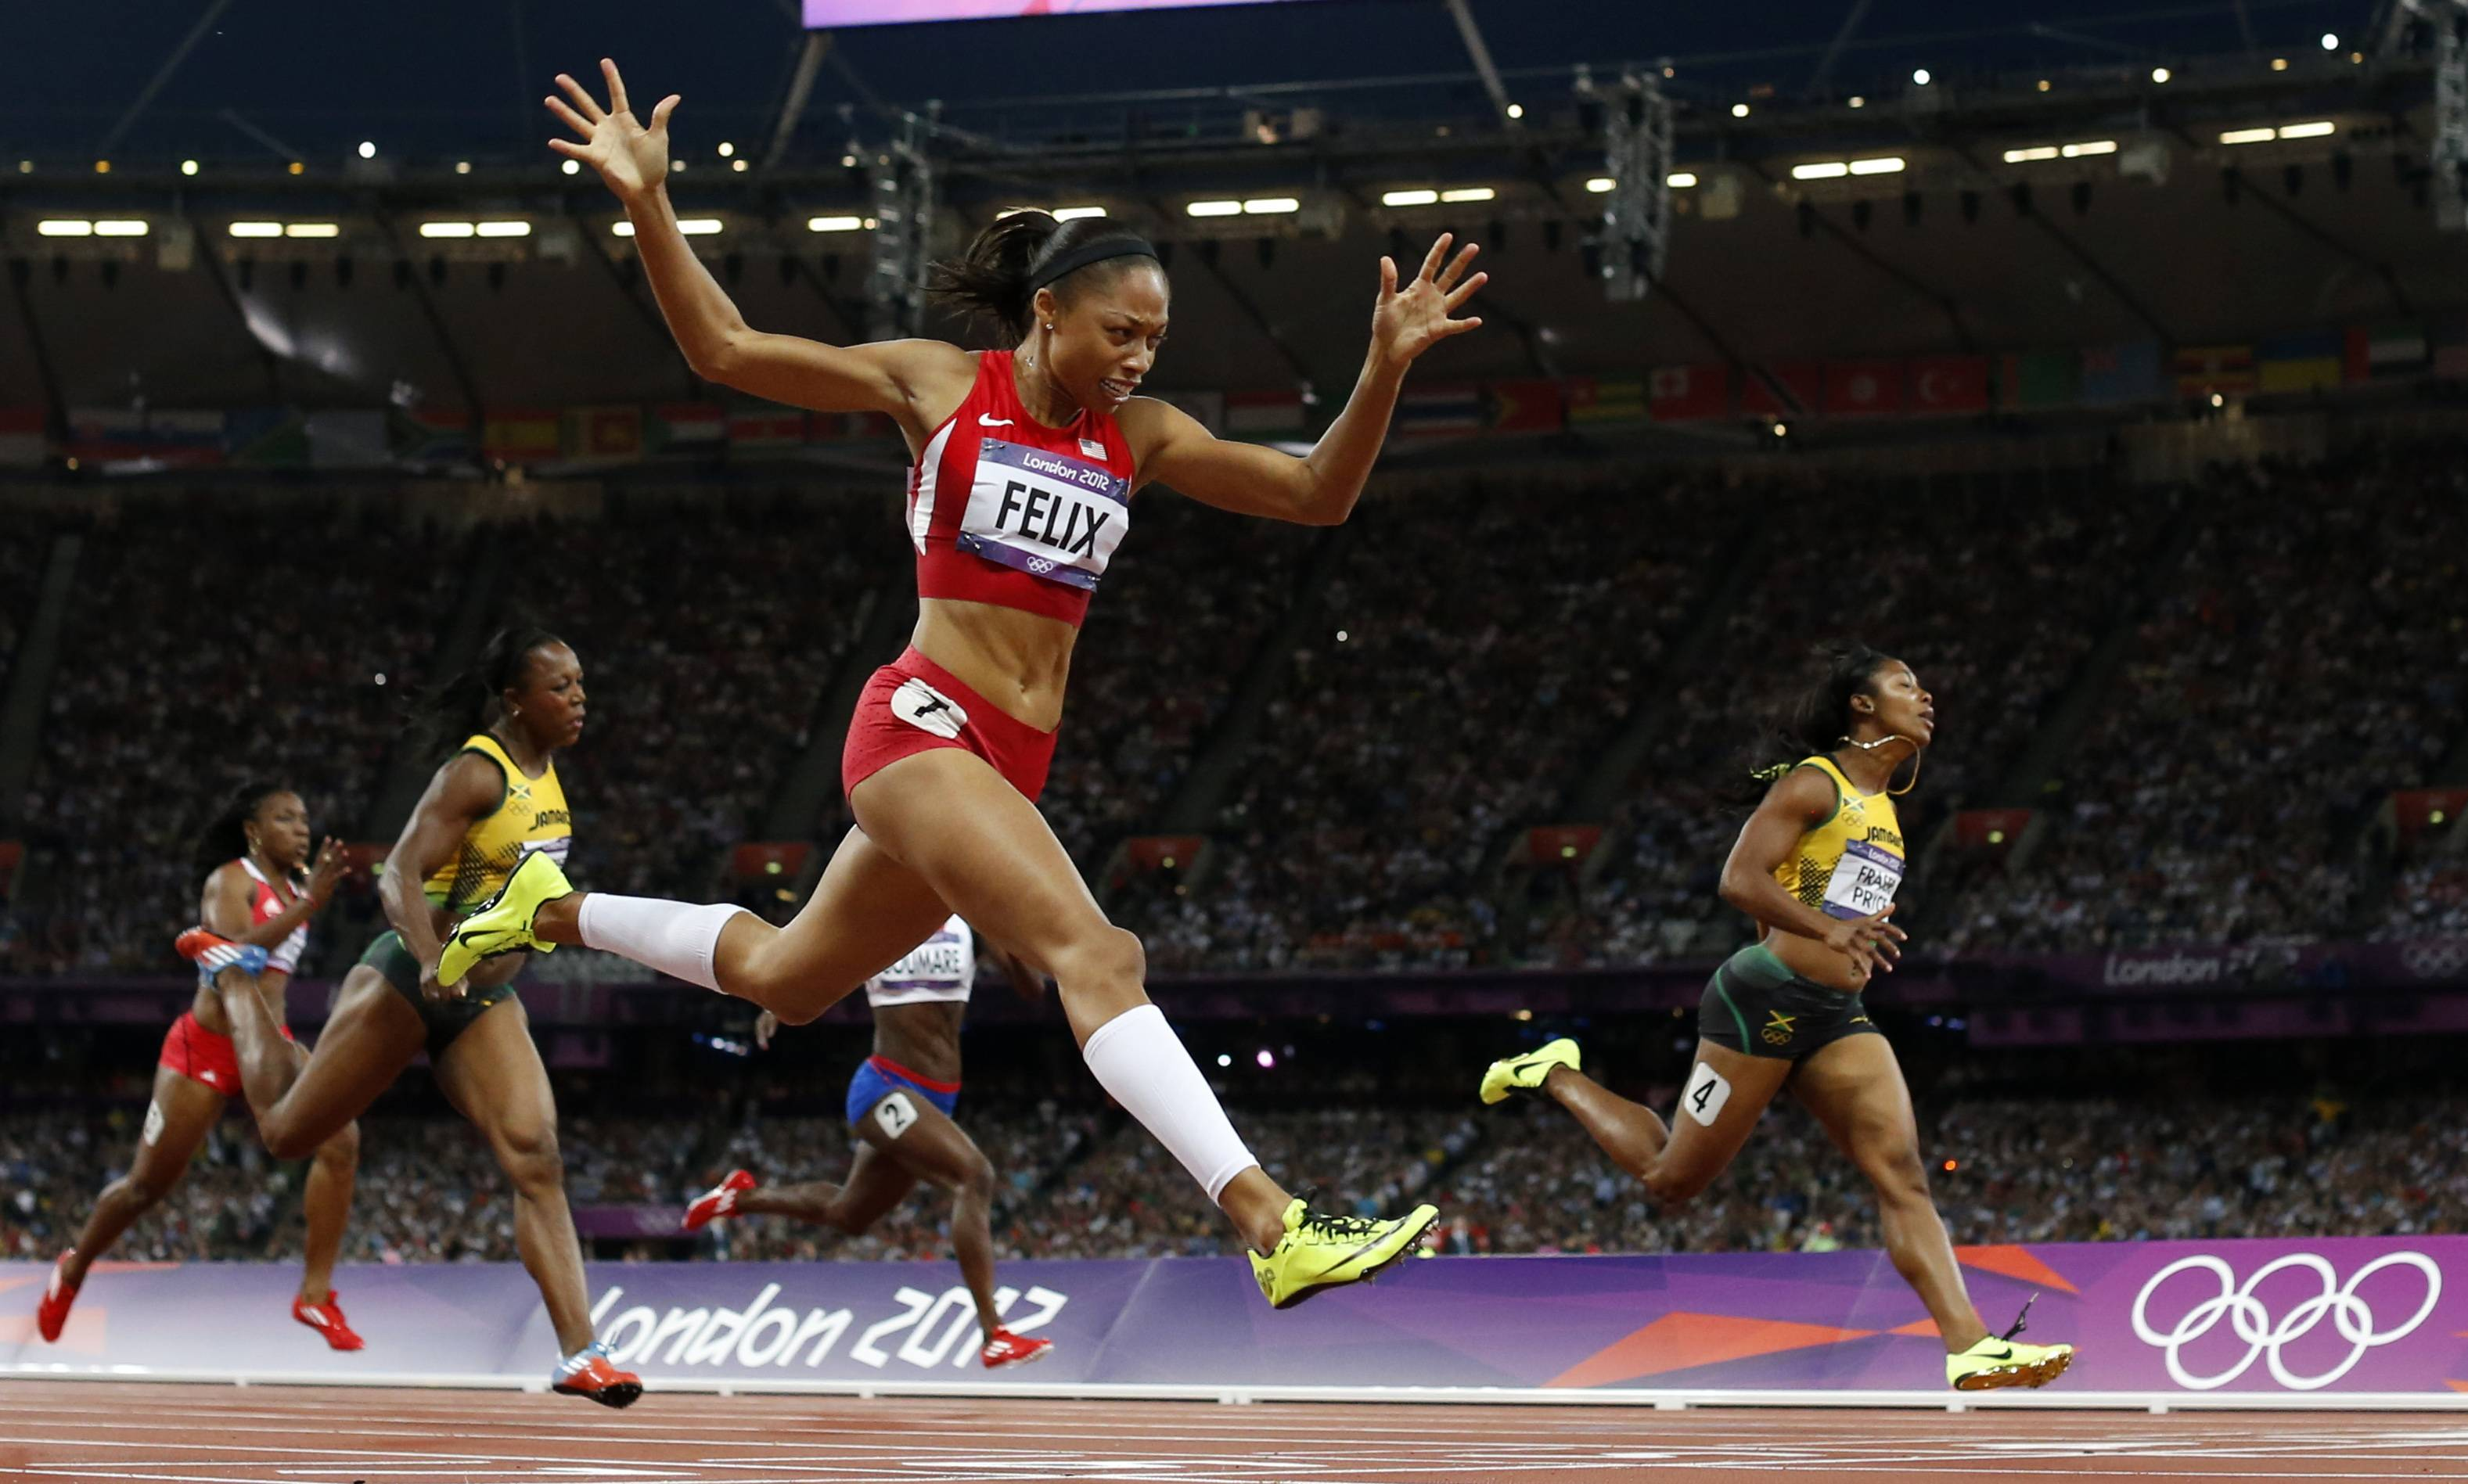 United States sprinter Allyson Felix, second from right, crosses the finish line to win gold ahead of Jamaica's Shelly-Ann Fraser-Pryce, right, in the women's 200-meter final.